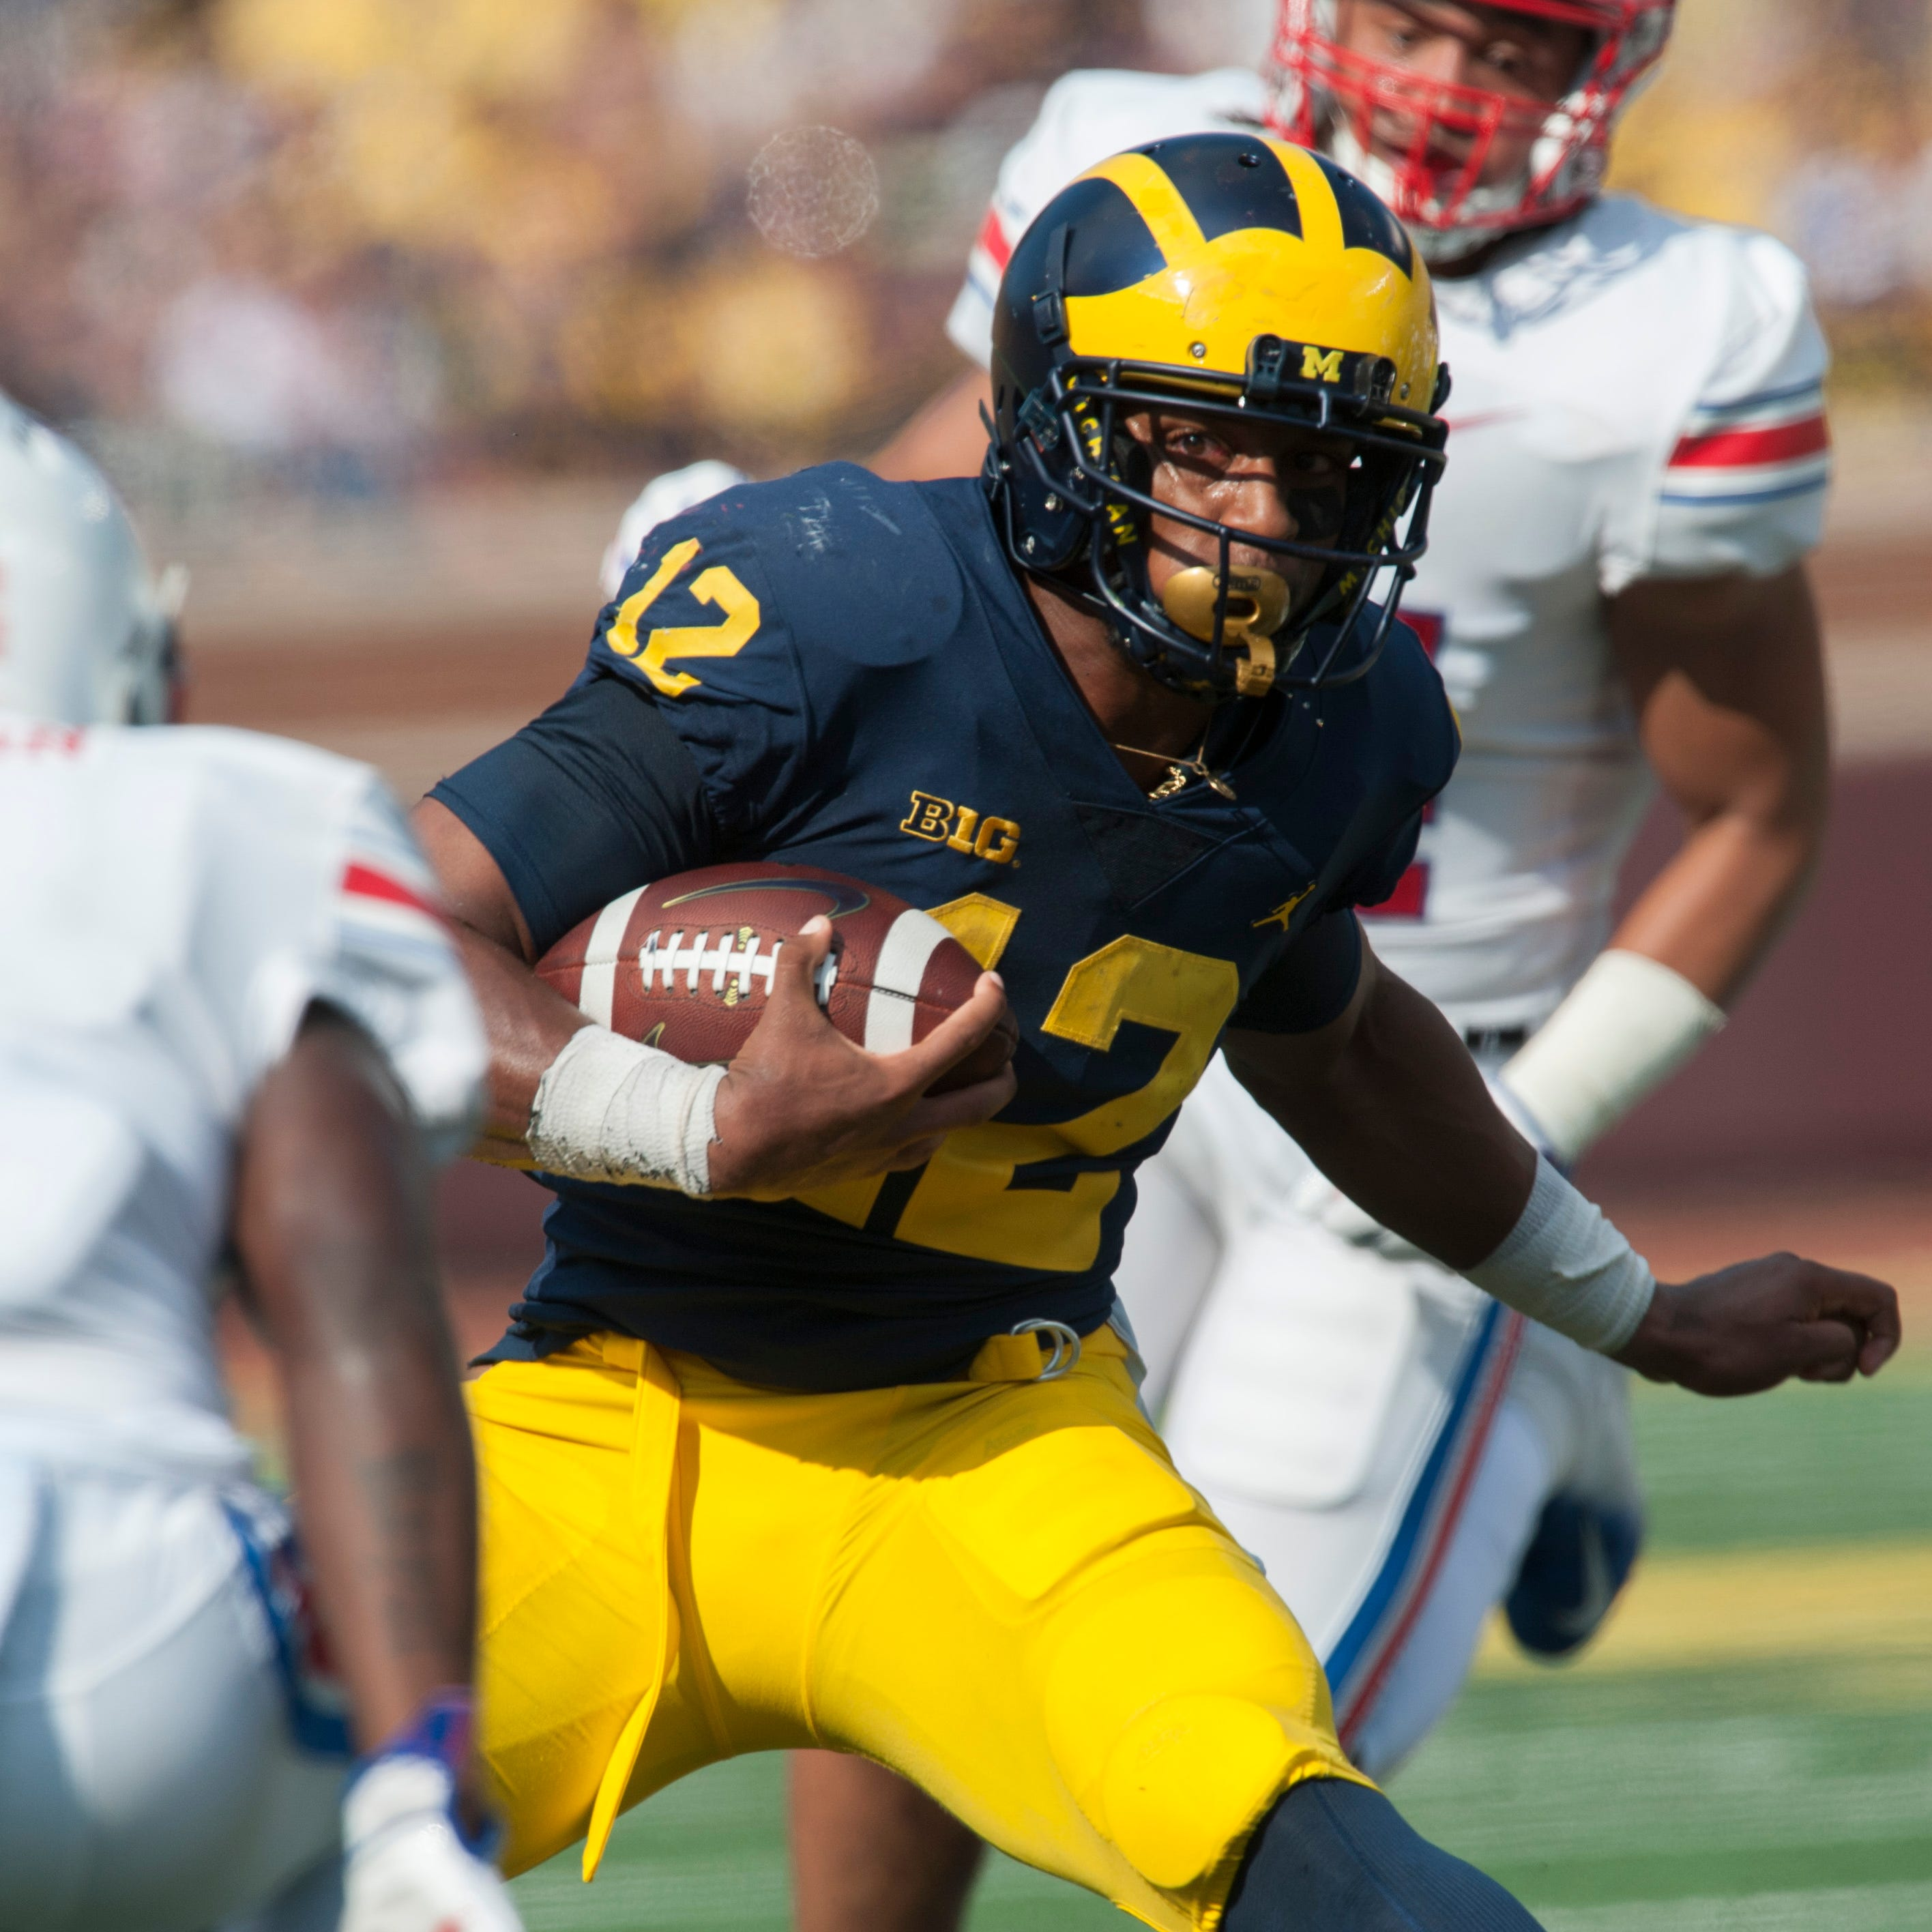 Higdon, Evans seem ready to go but Michigan likes its RB depth